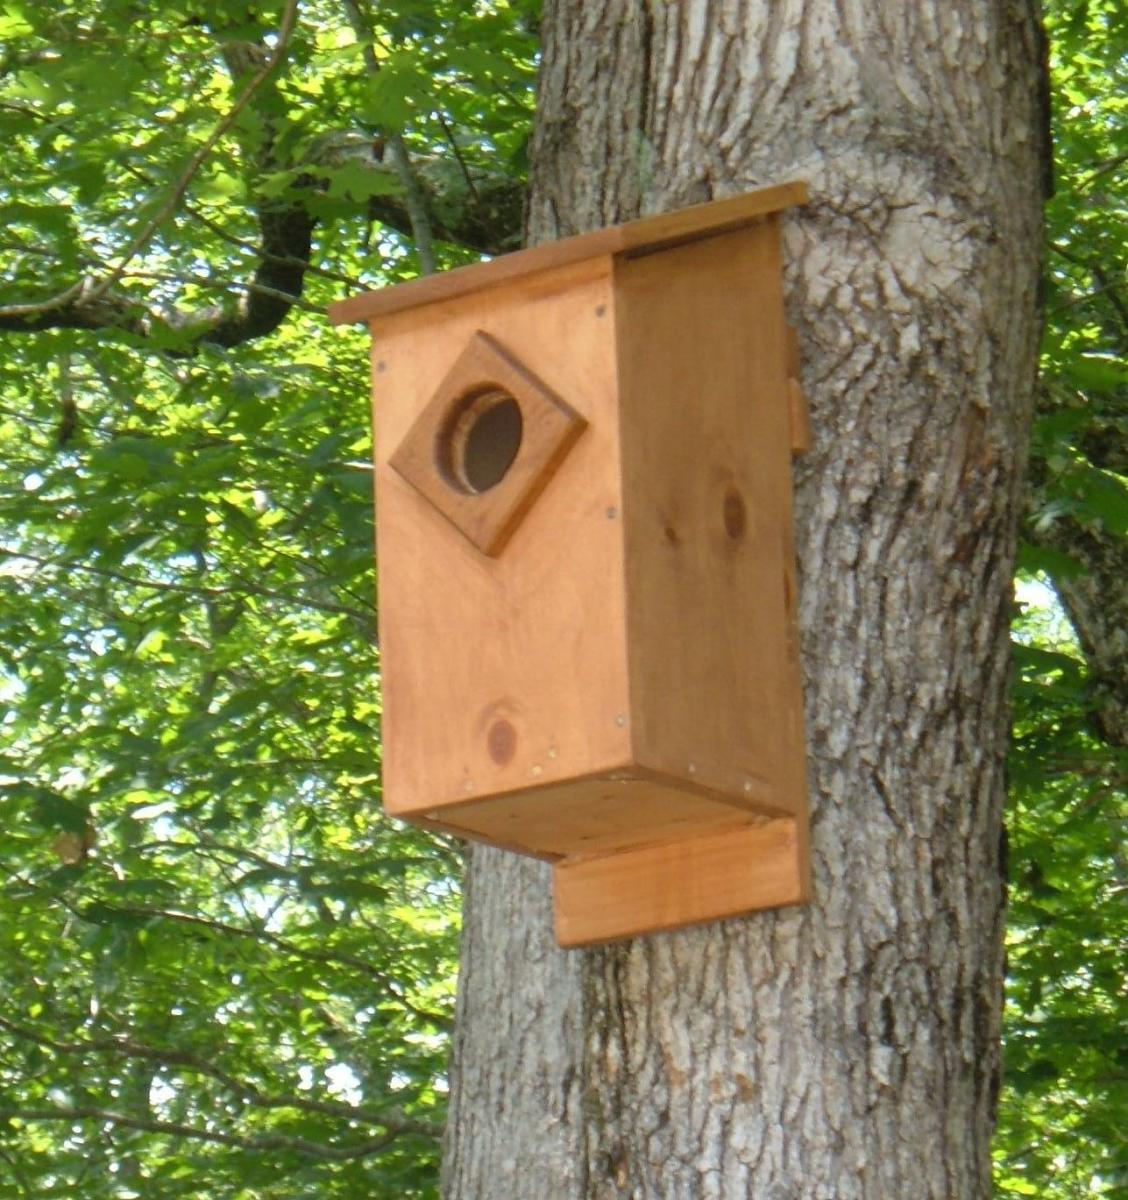 Screech owl house plans how to build a screech owl box for How to build your own house in florida